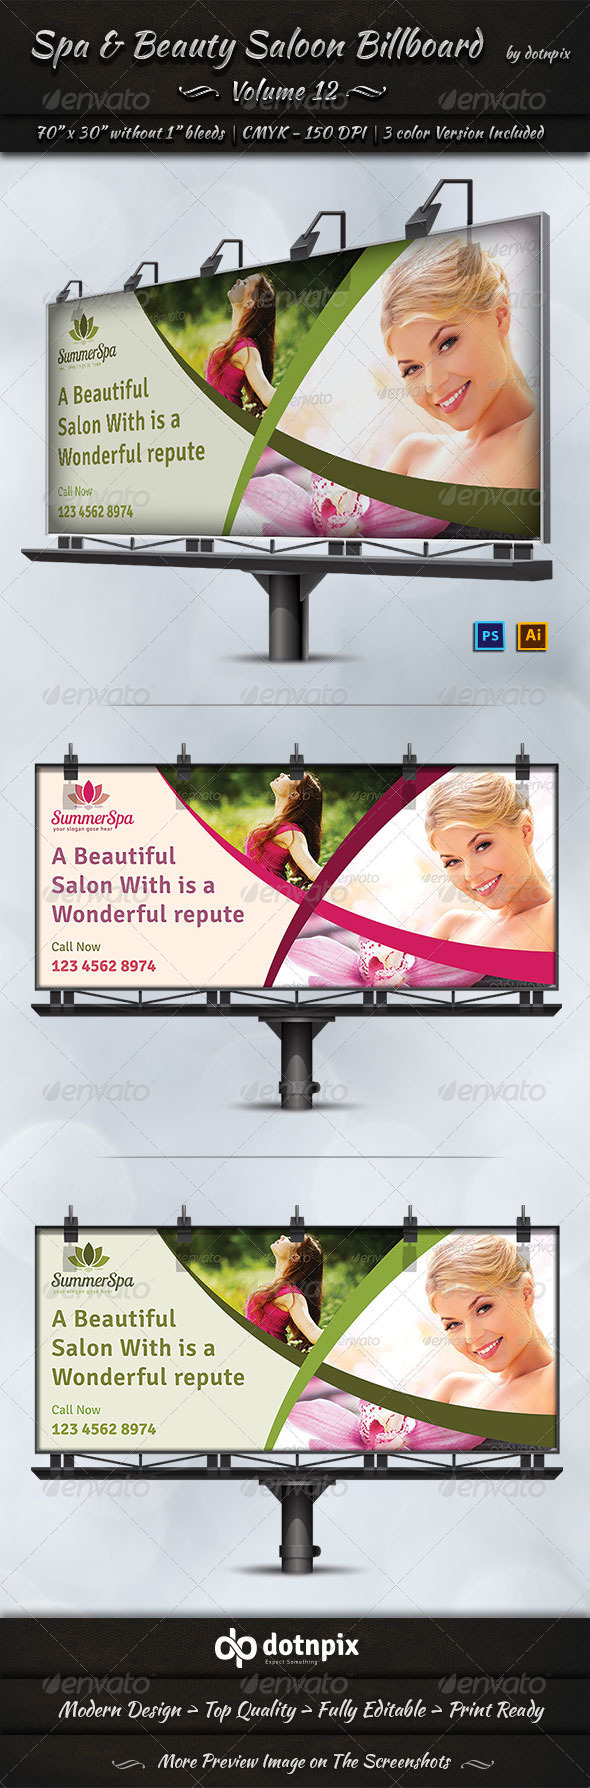 GraphicRiver Spa & Beauty Saloon Billboard Template Volume 12 7968785